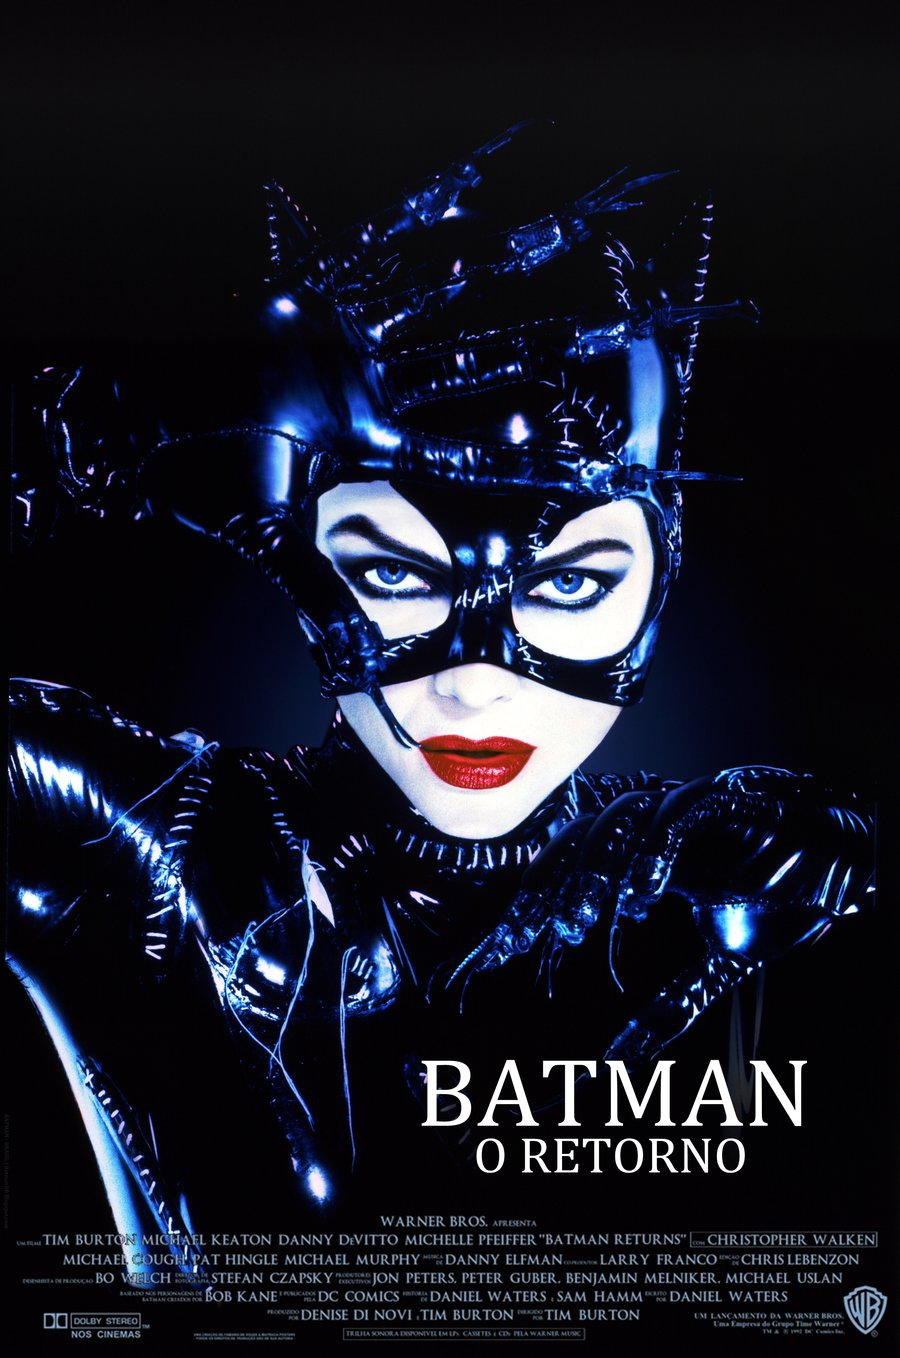 batman_returns___character_poster____catwoman_by_batmanbrasil-d6aoav8